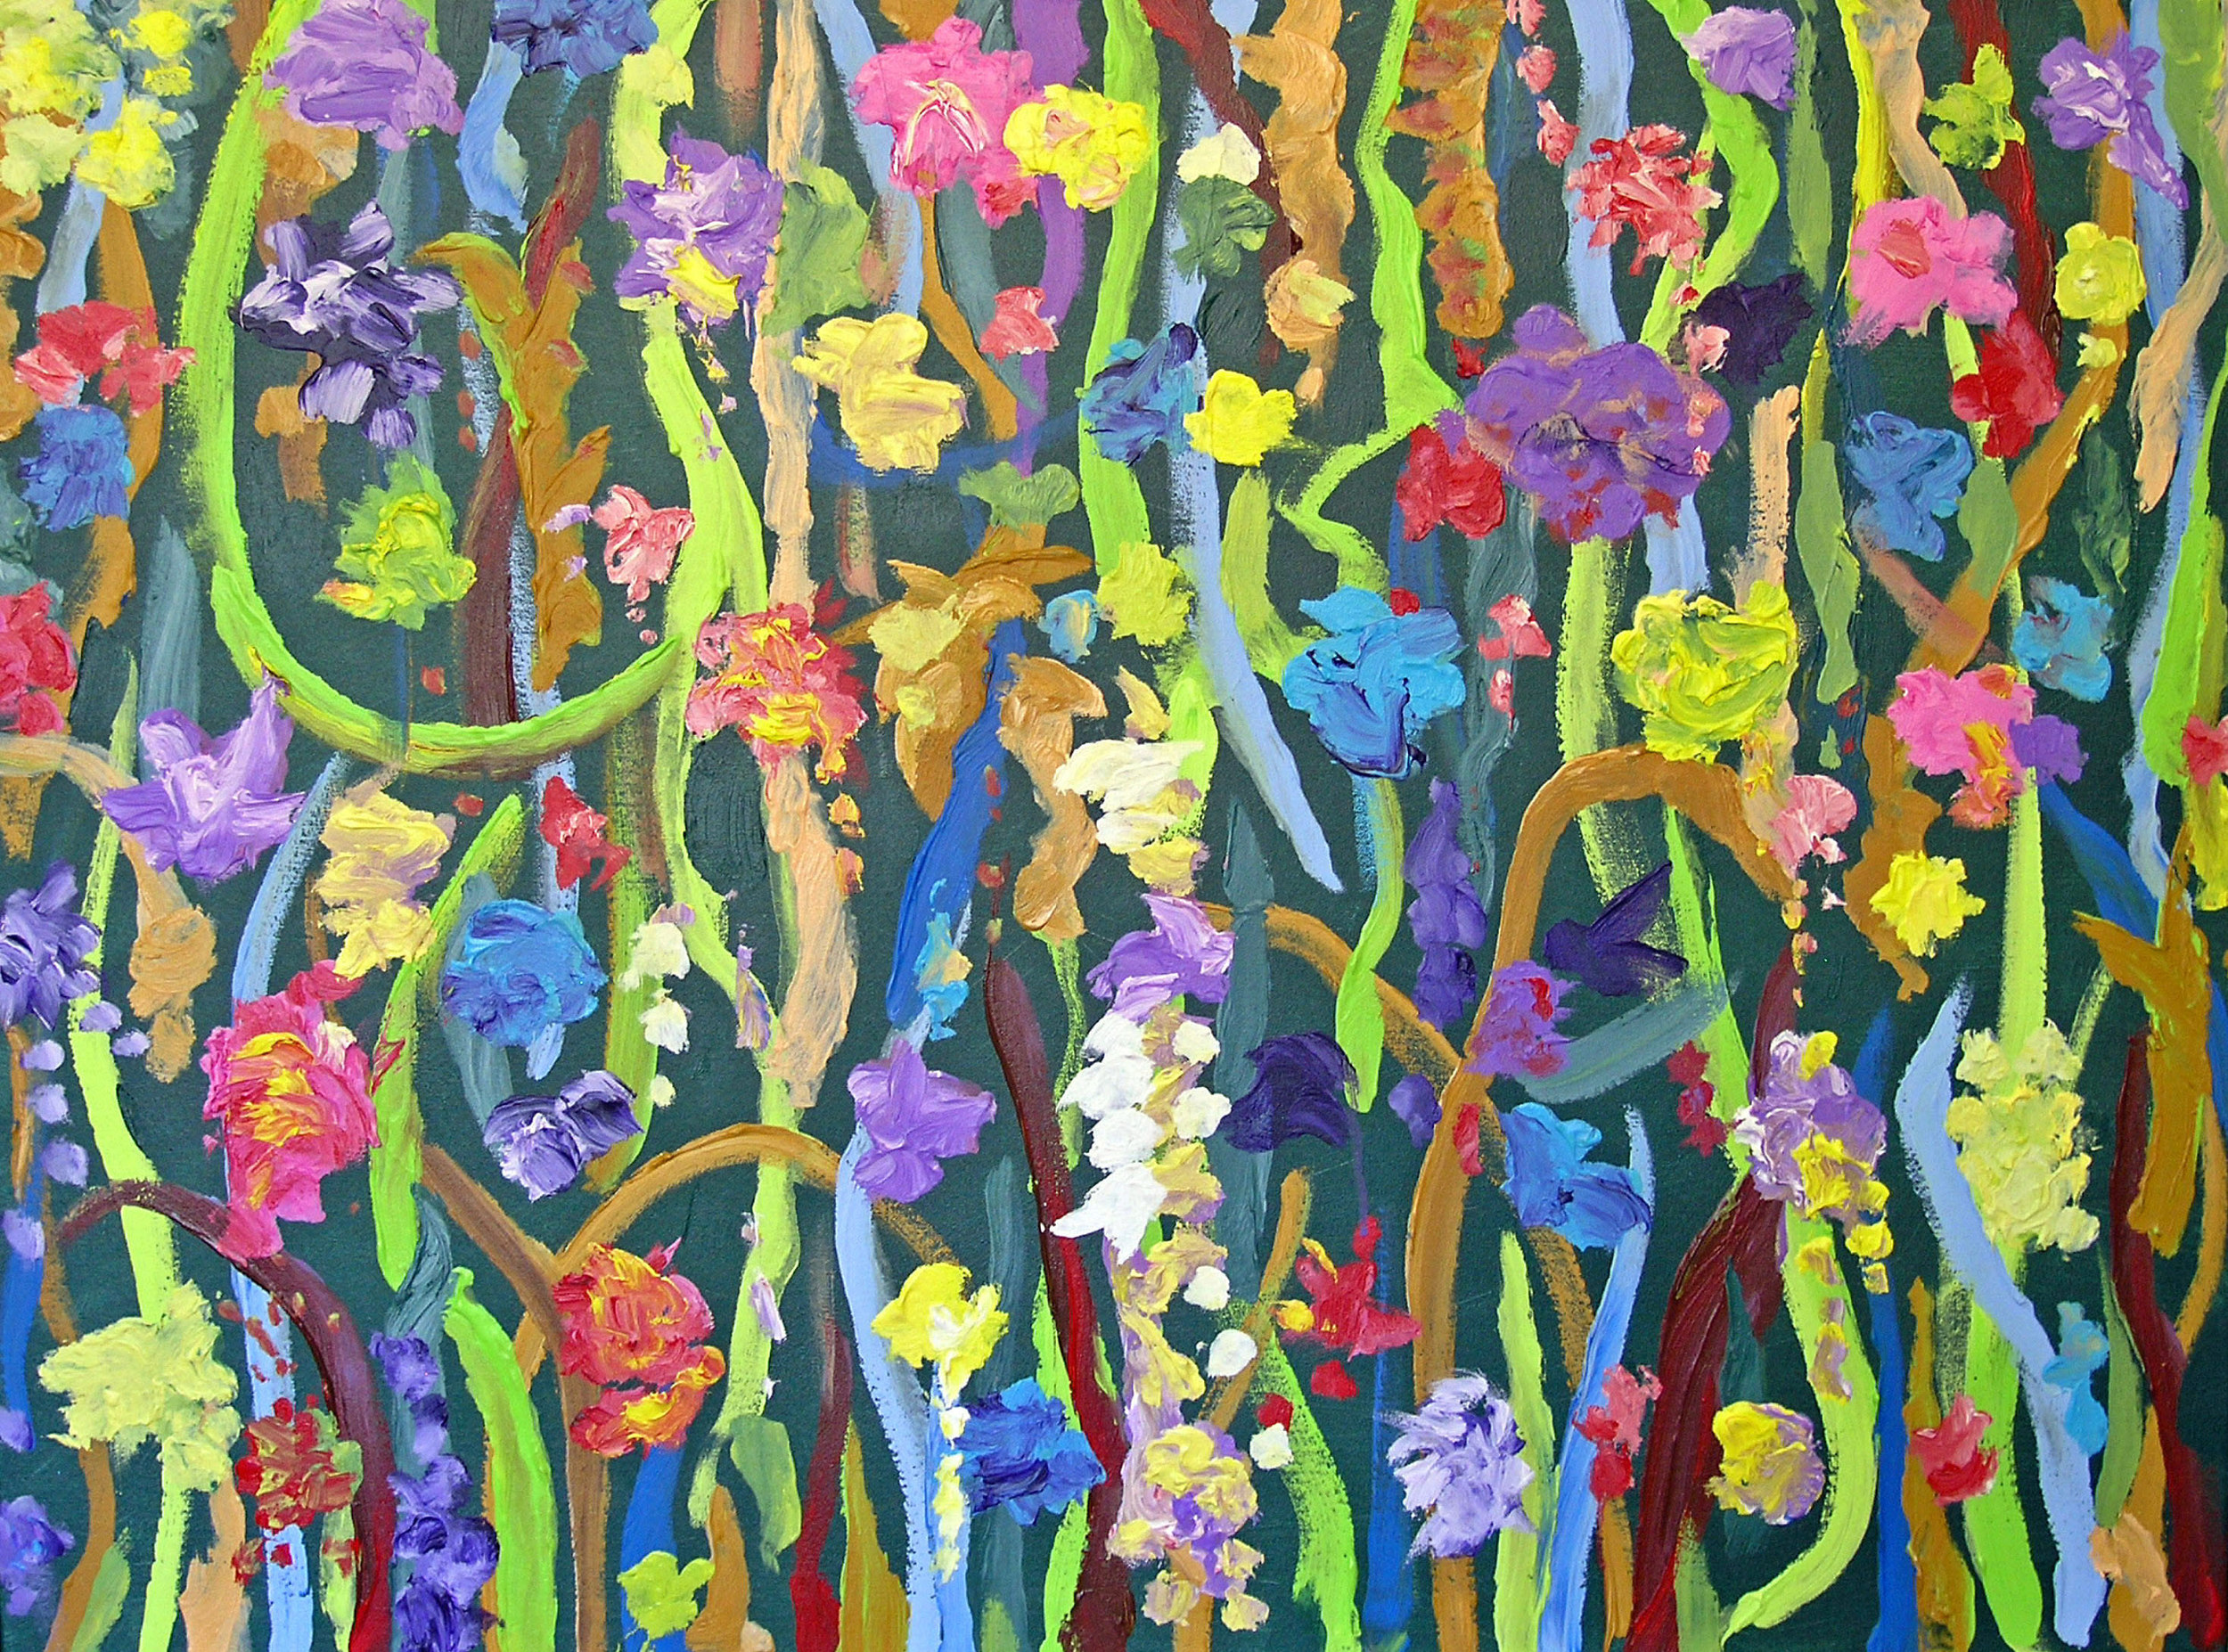 "7 Times to Flourish Number 5 - 2014 30h"" x 40""w acrylic on canvas"